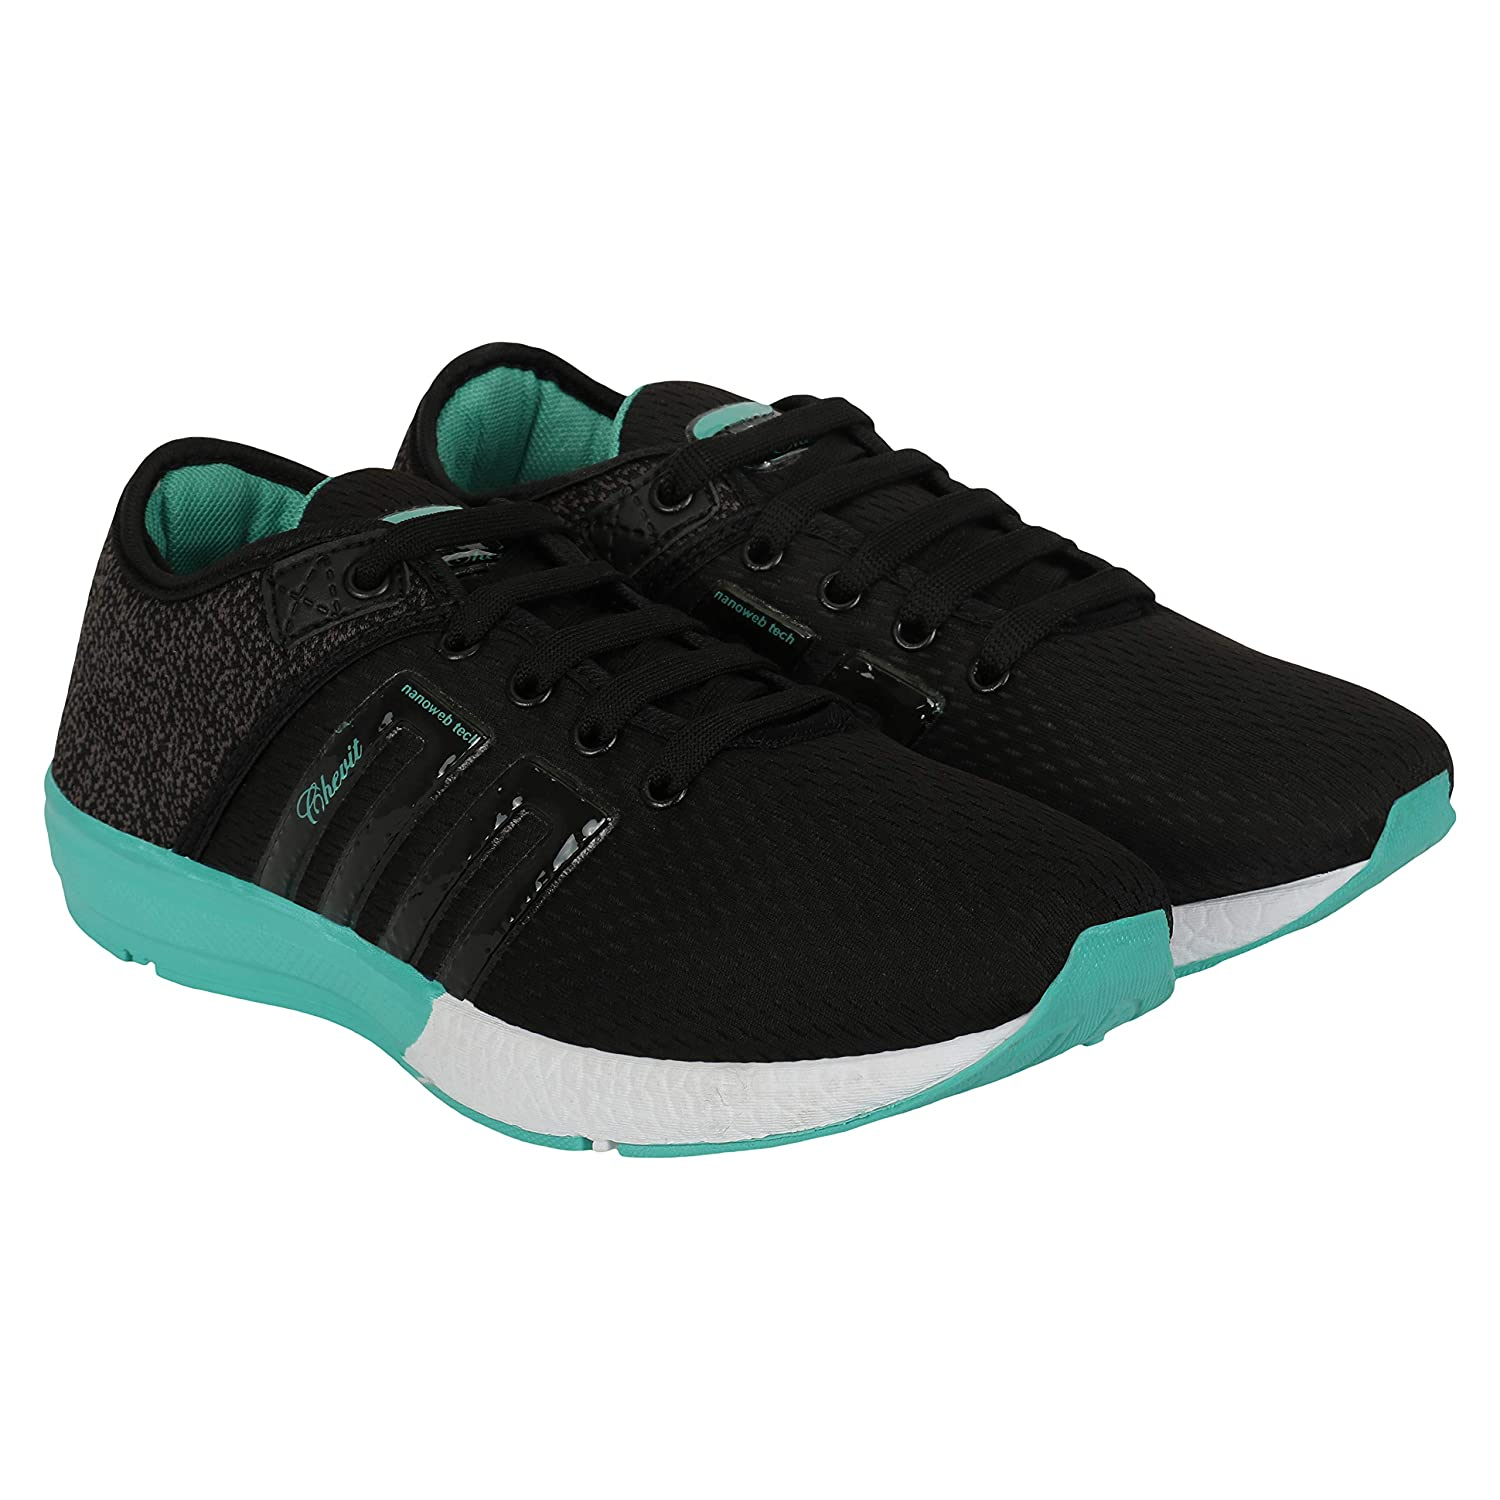 04fec5a8fcc Chevit Men's Ultra 431 Running Shoes (Sports Shoes): Buy Online at Low  Prices in India - Amazon.in